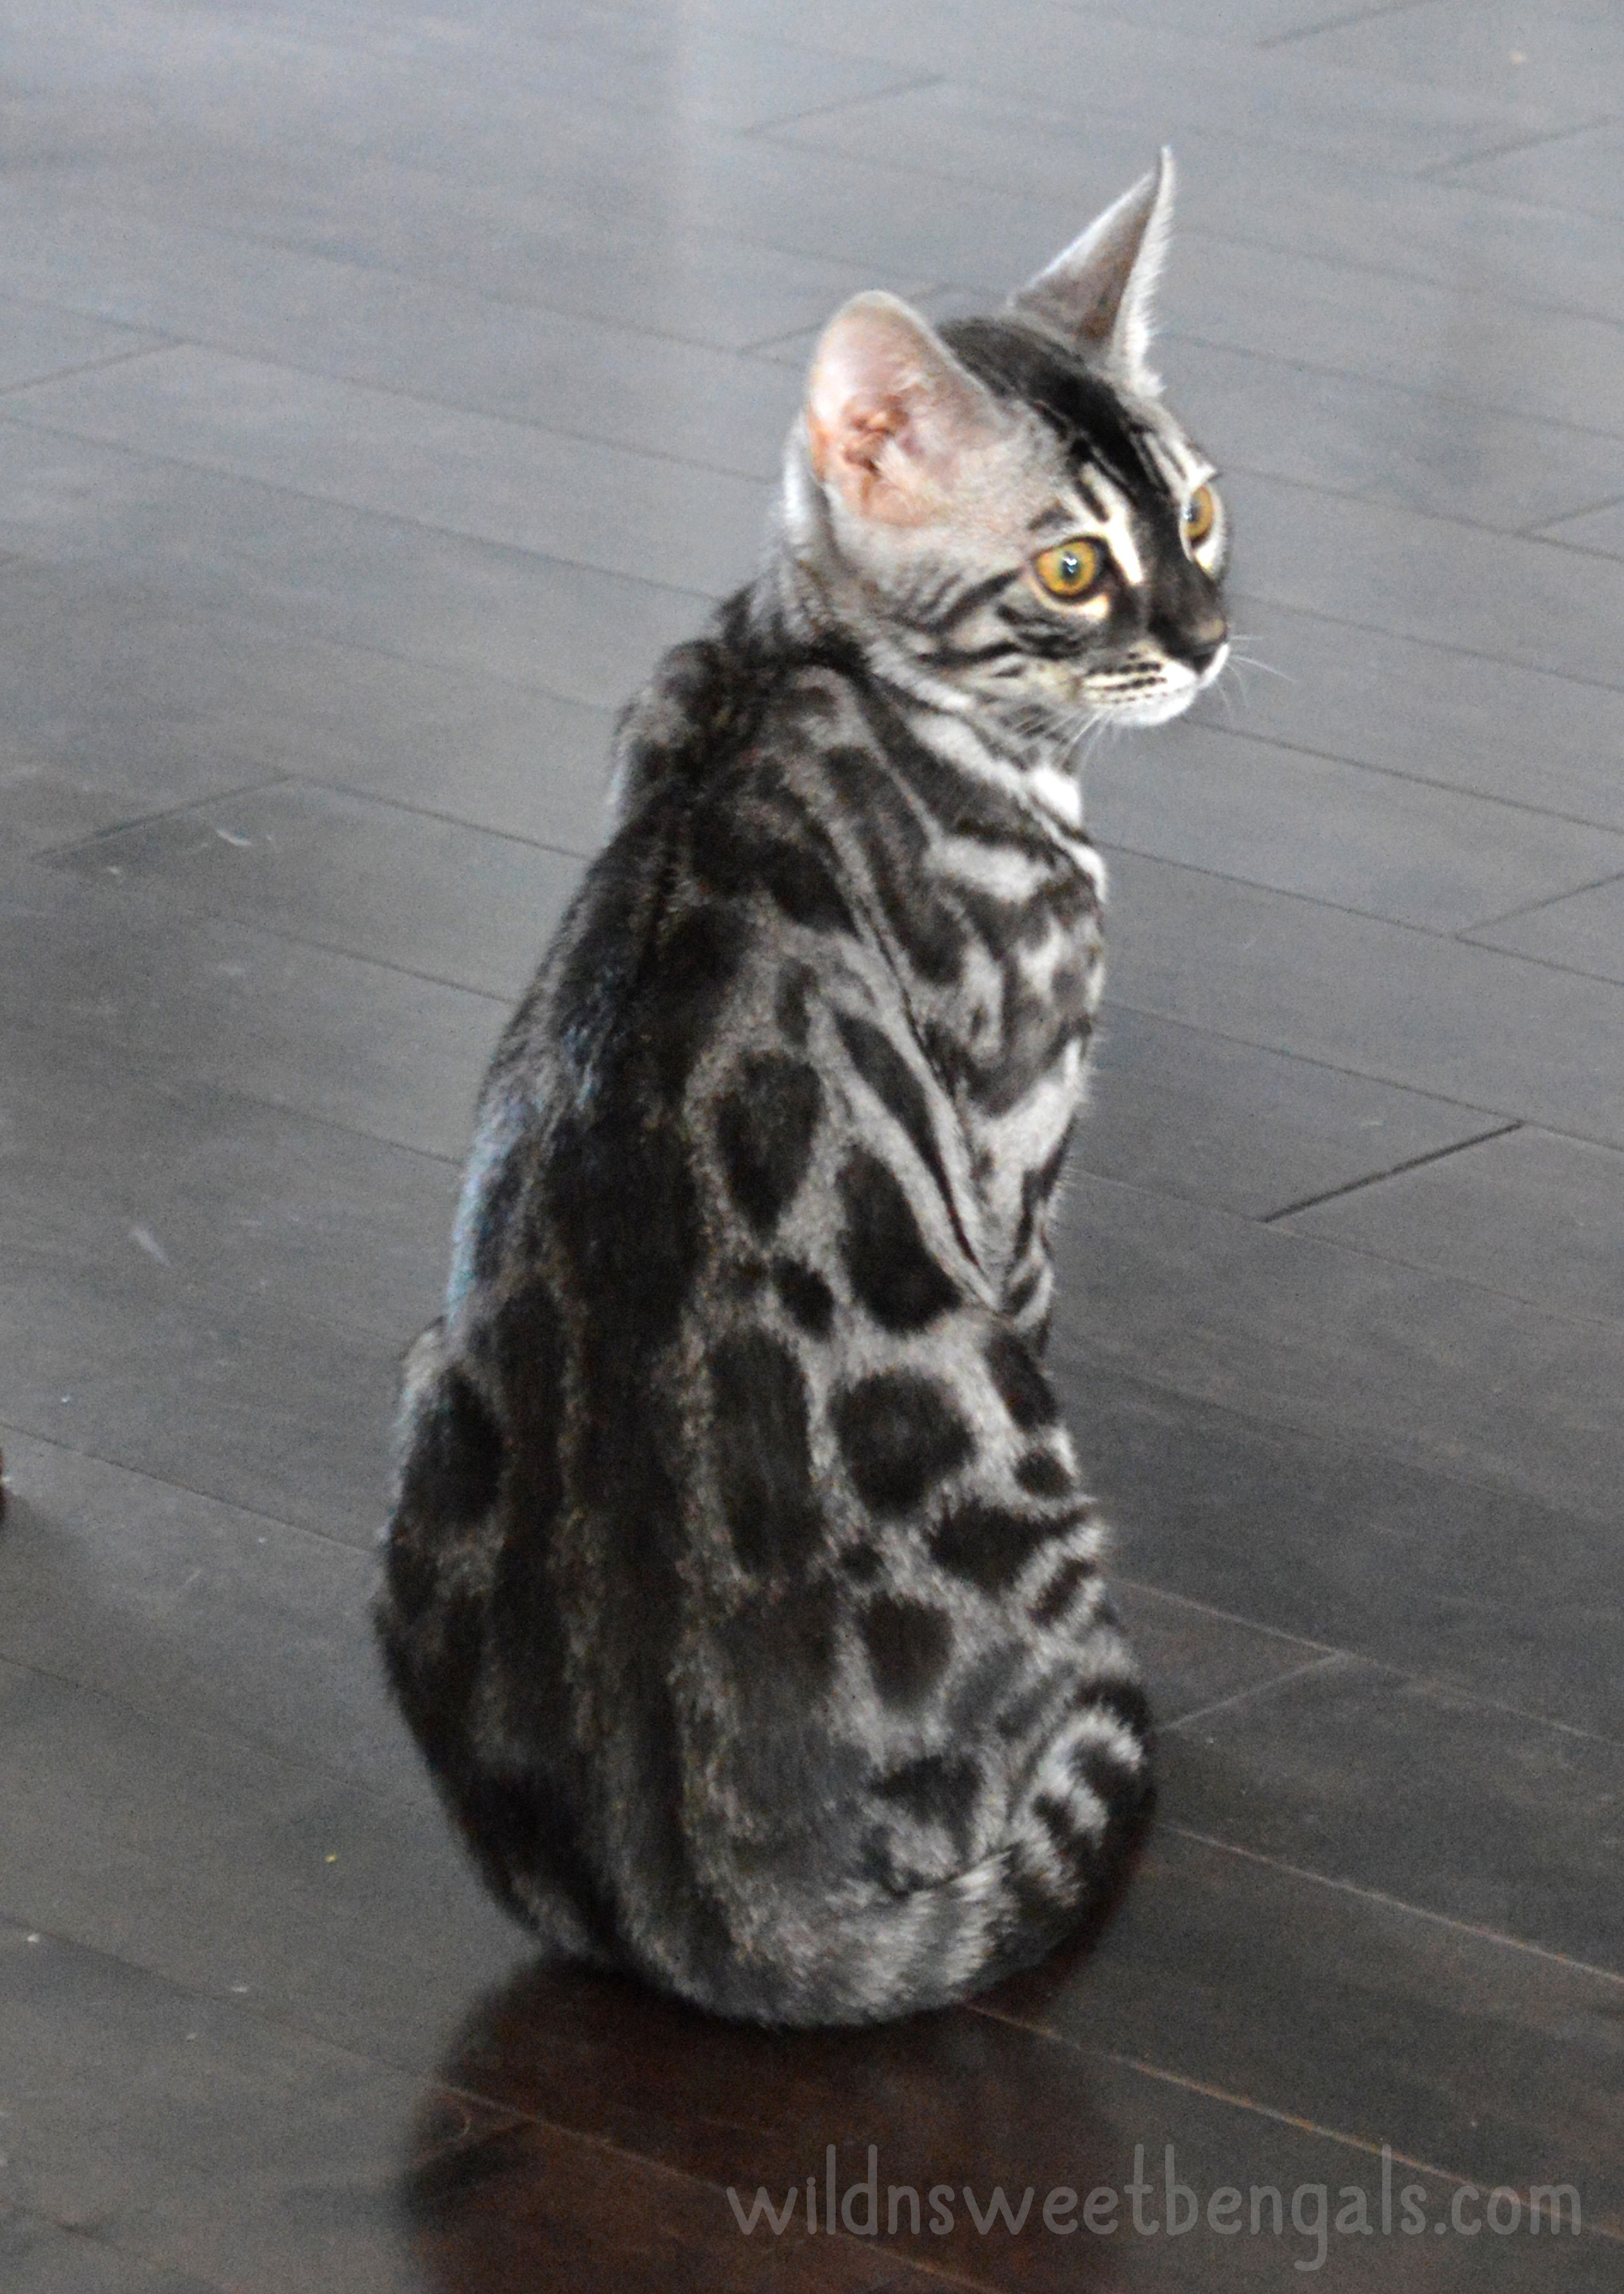 Outstanding silver charcoal bengal cat born at home More photos